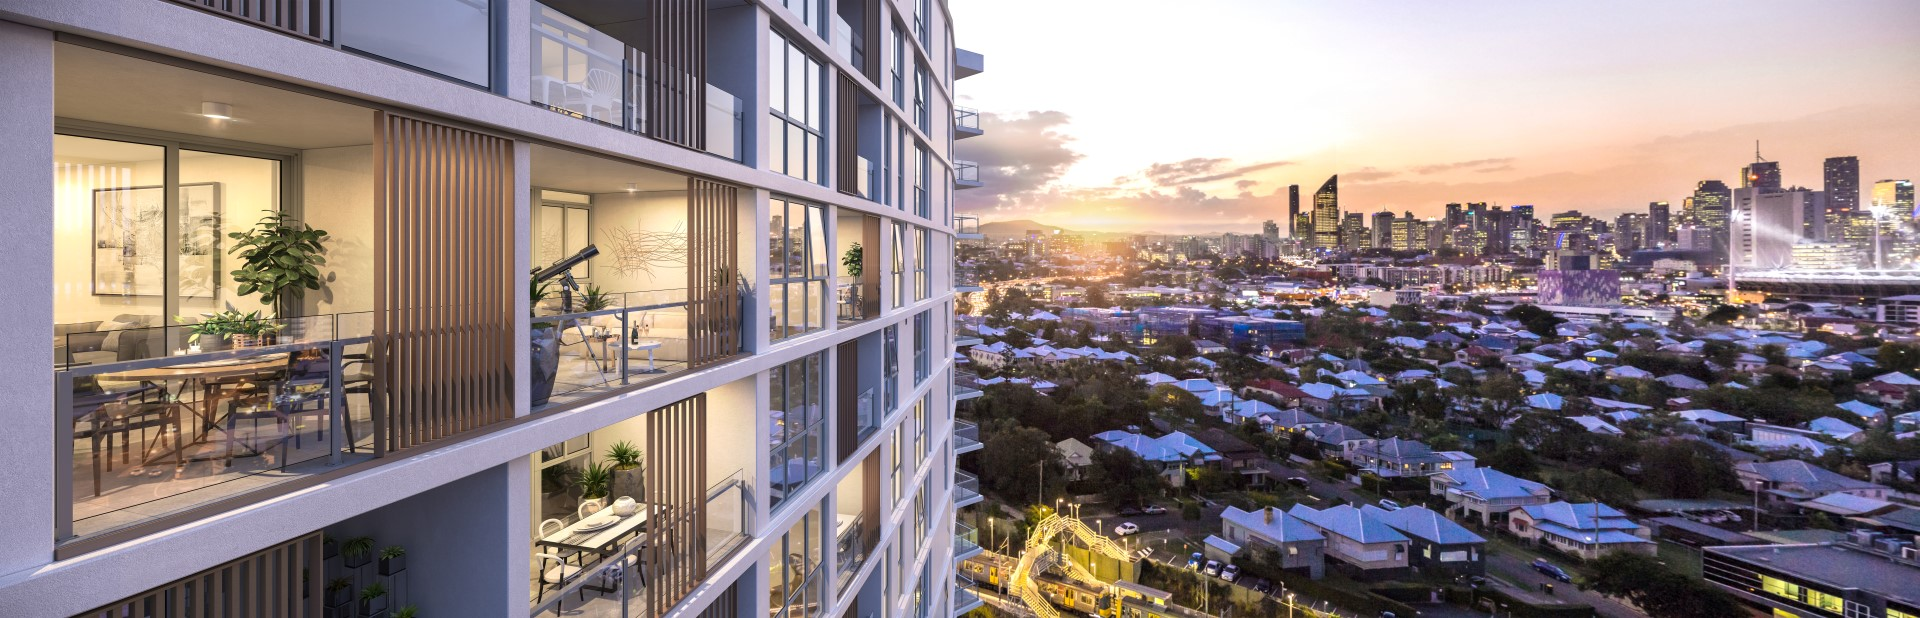 Park Central One apartment stunning exterior in Woolloongabba Queensland